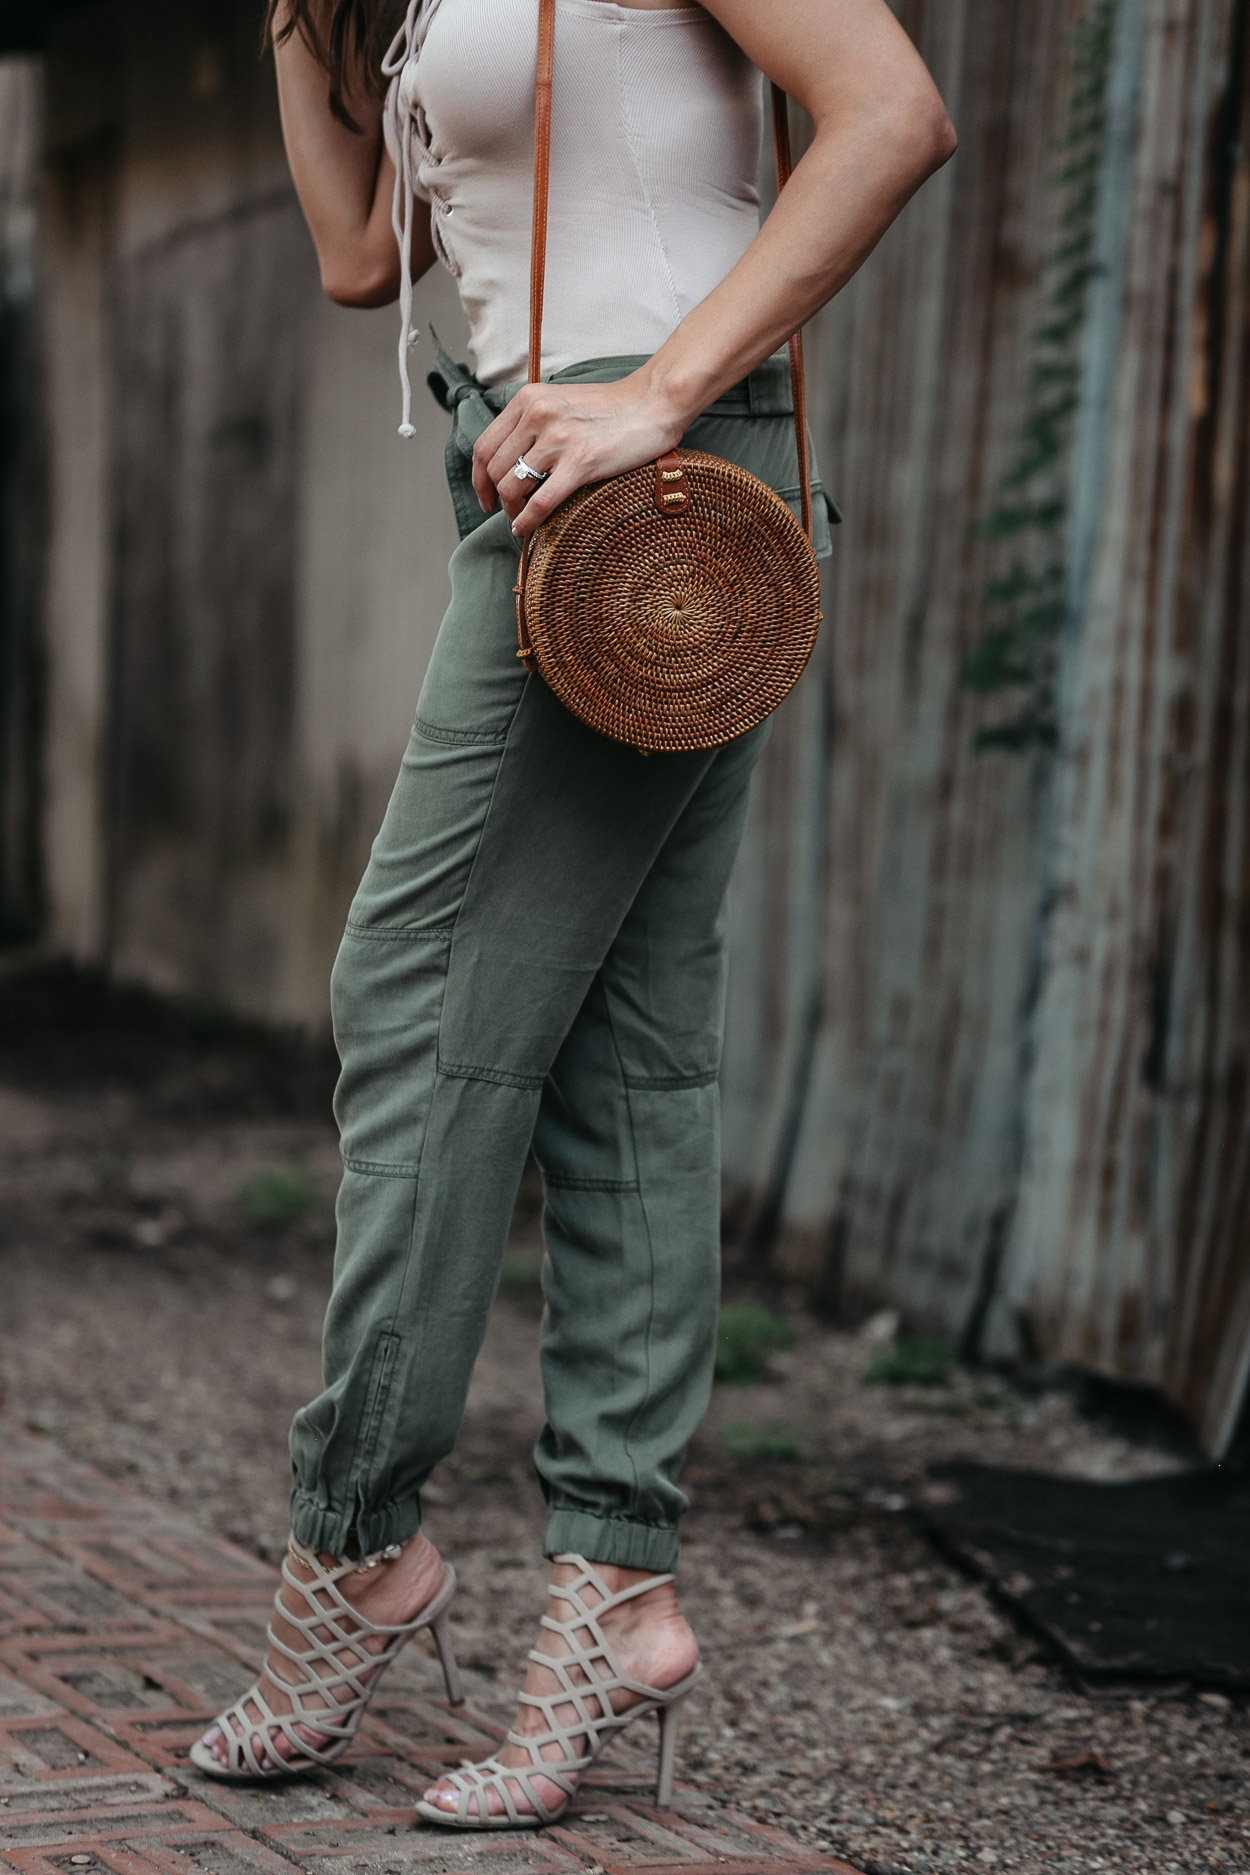 Super soft cargo pants from LOFT are worn with round basket bag by AGlamLifestyle blogger